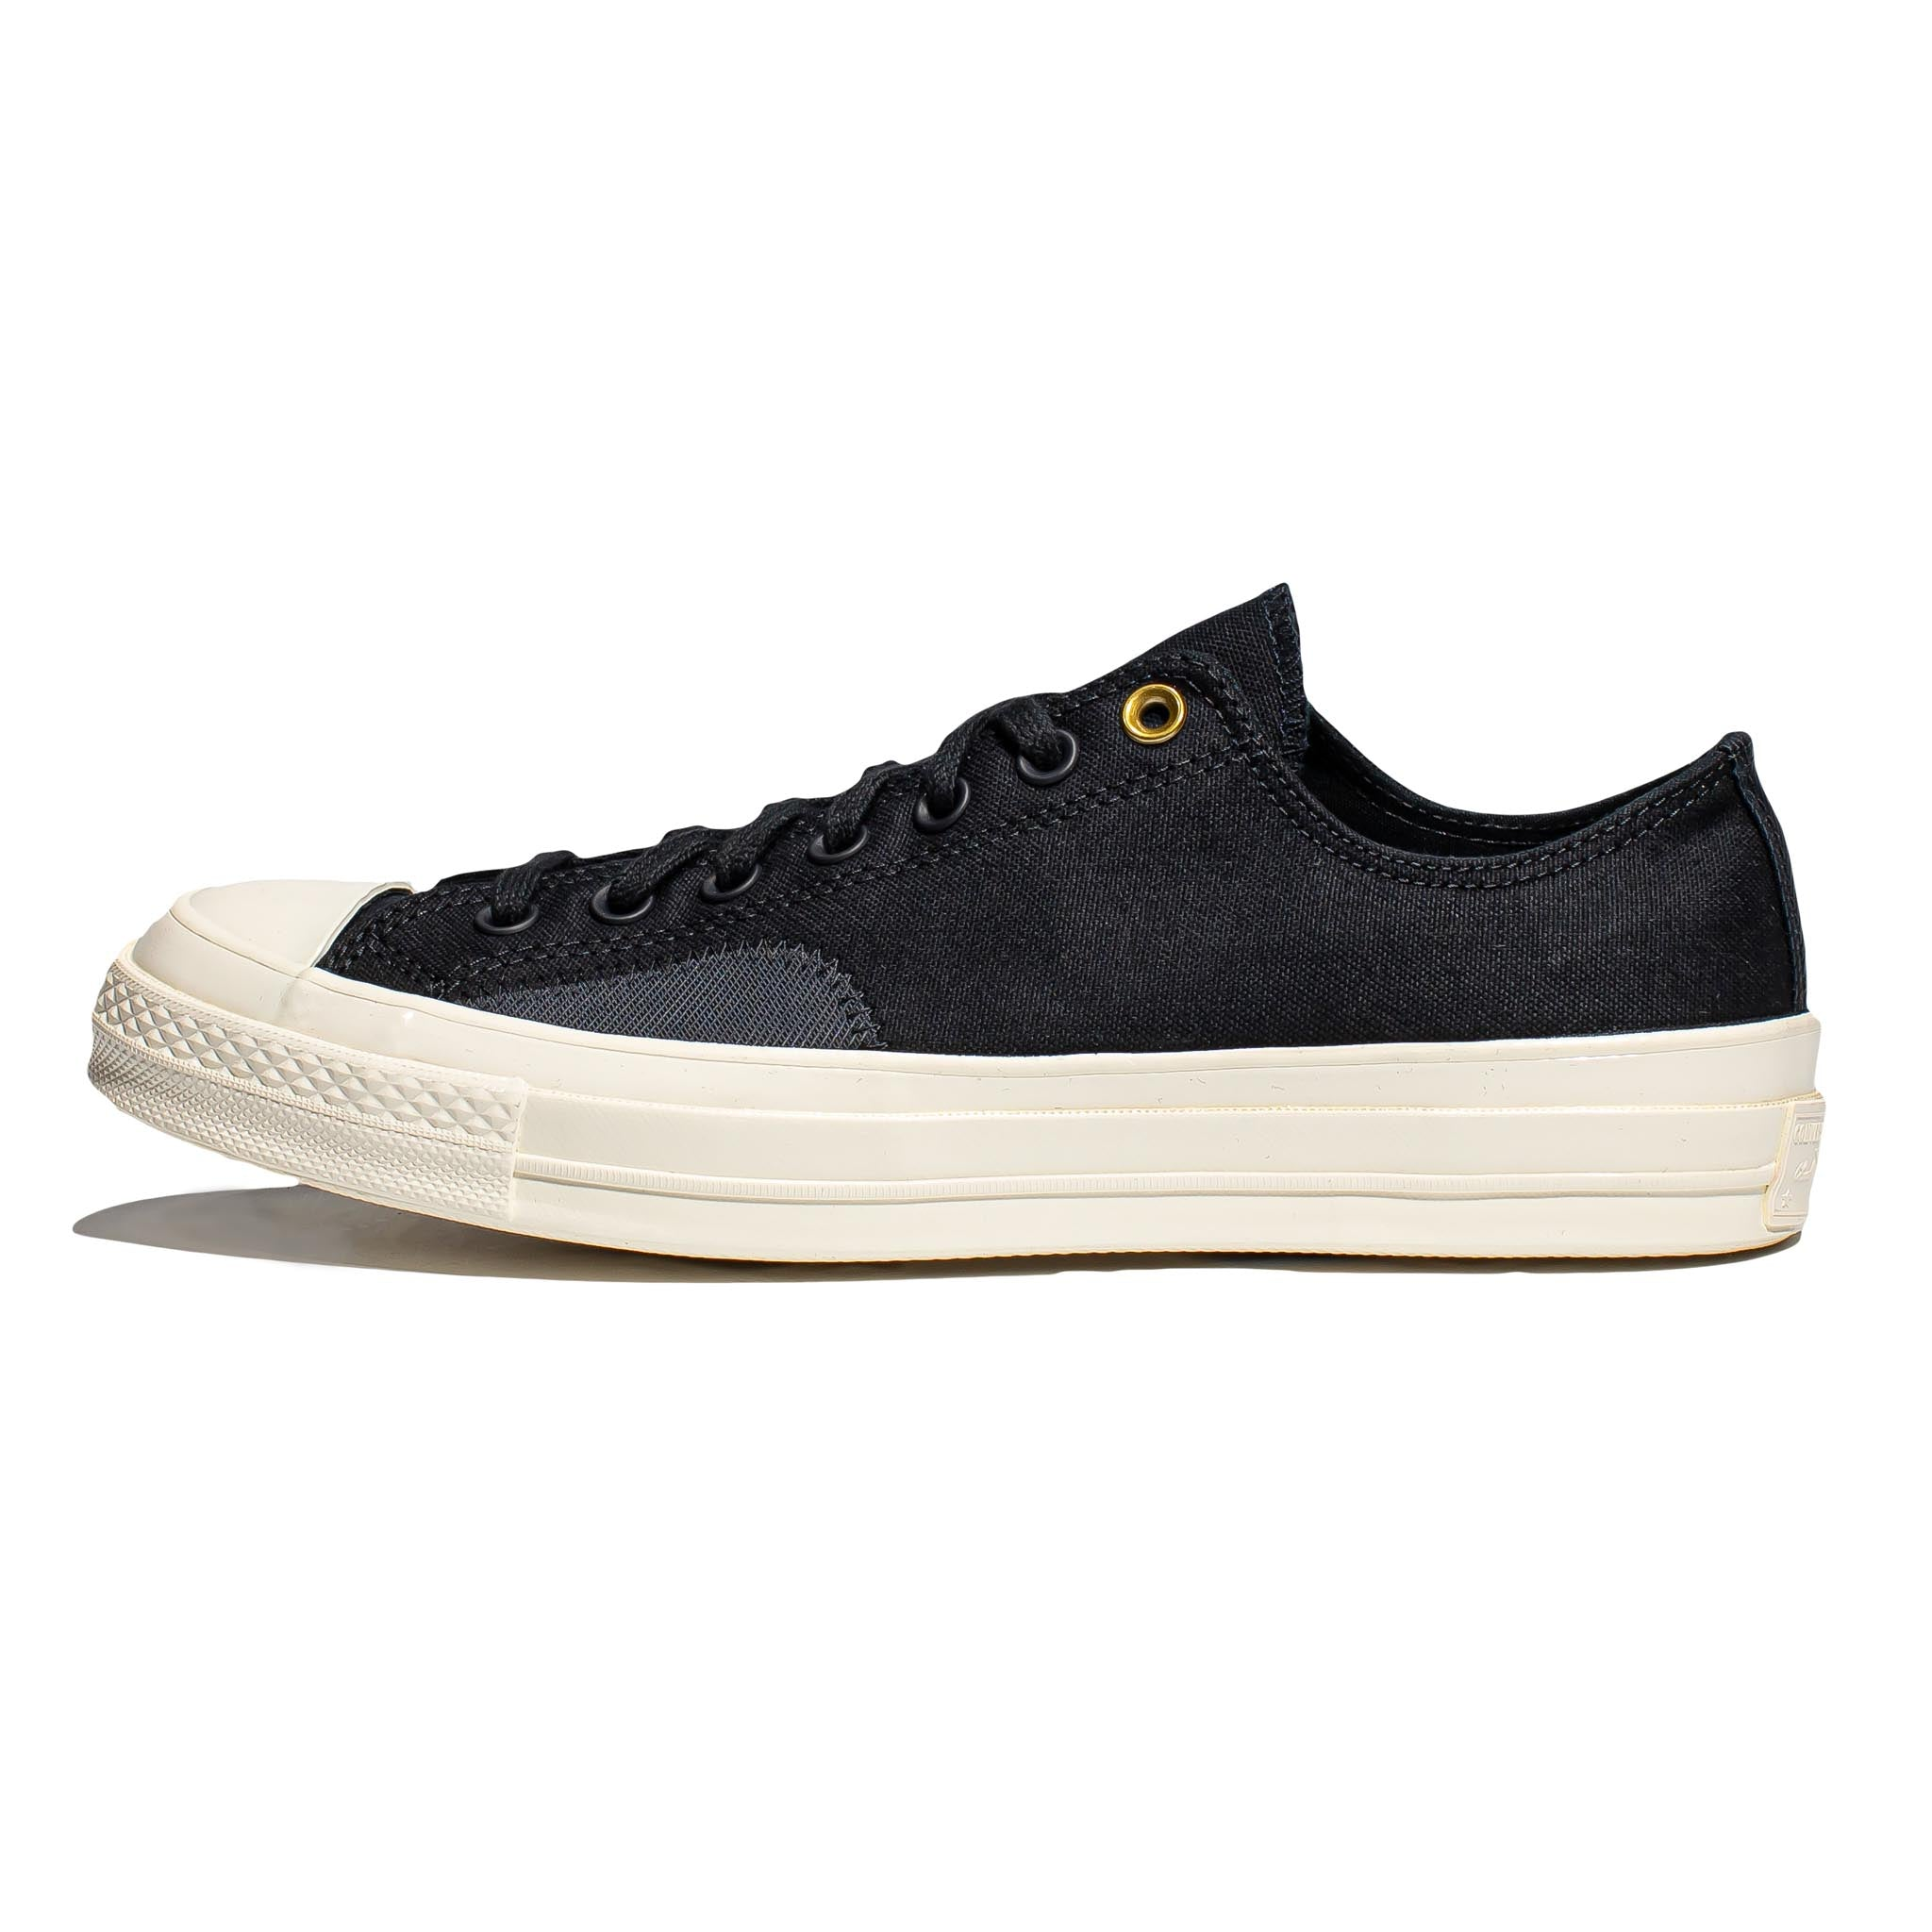 Converse Chuck 70 Low 'Clean N Preme' Black